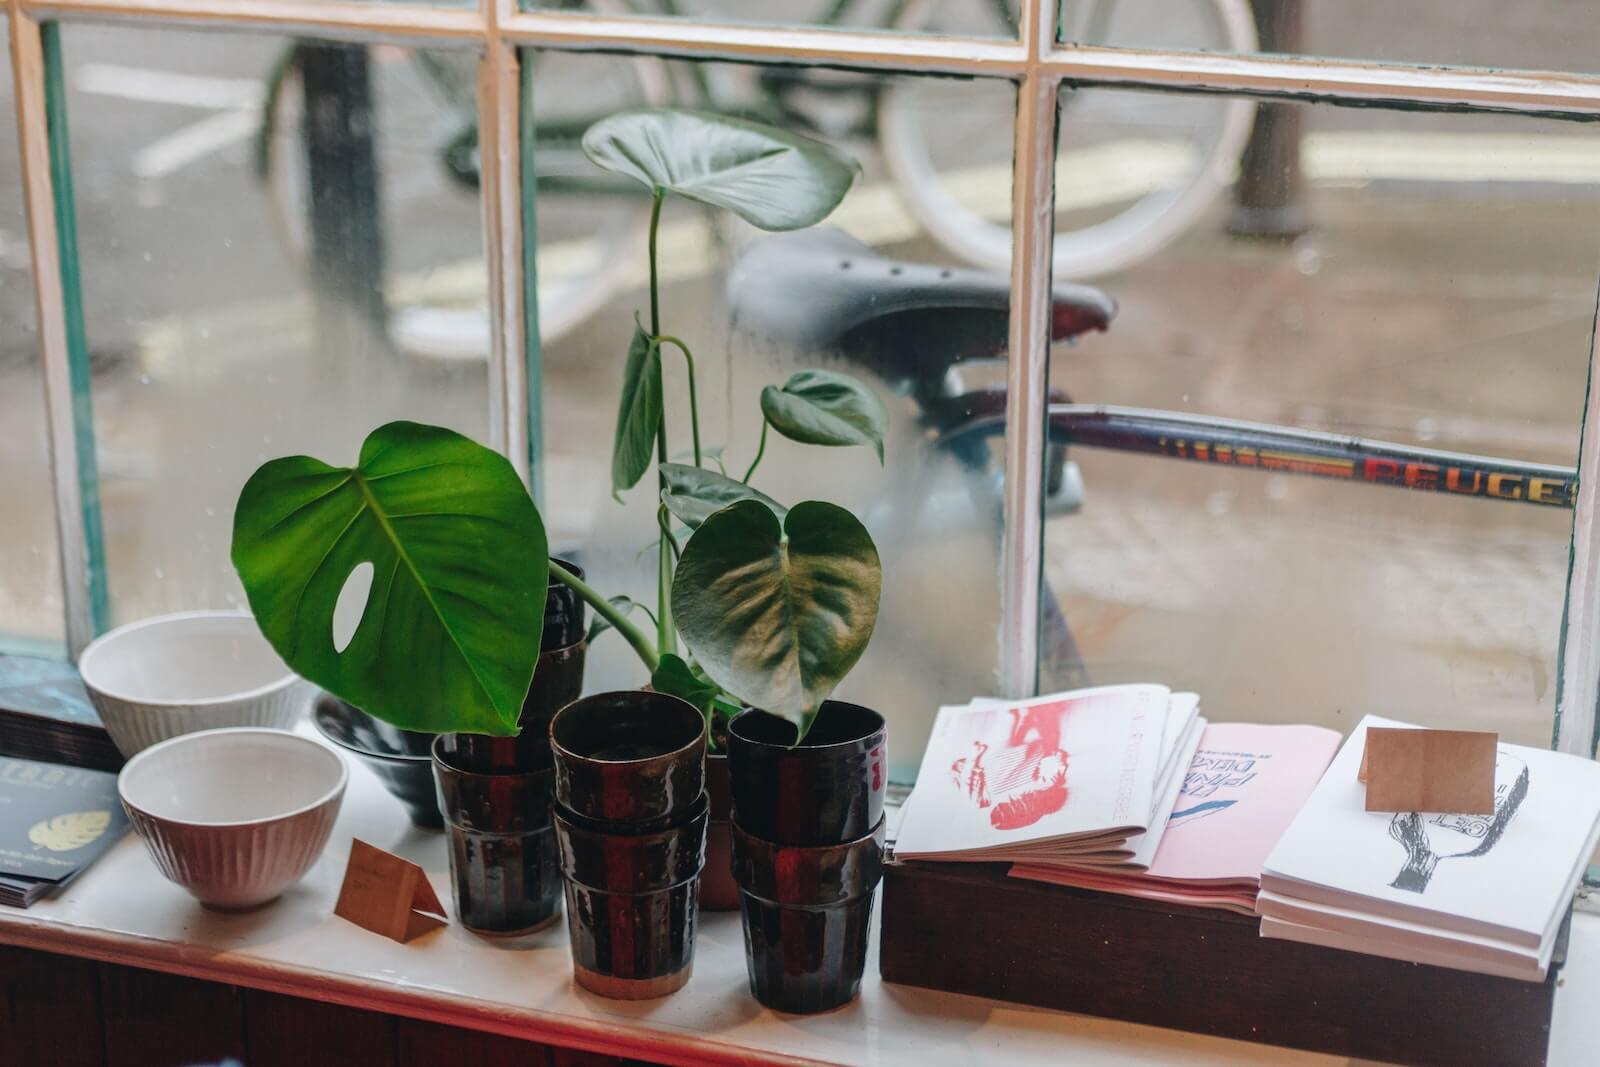 Cups and plant on window sill